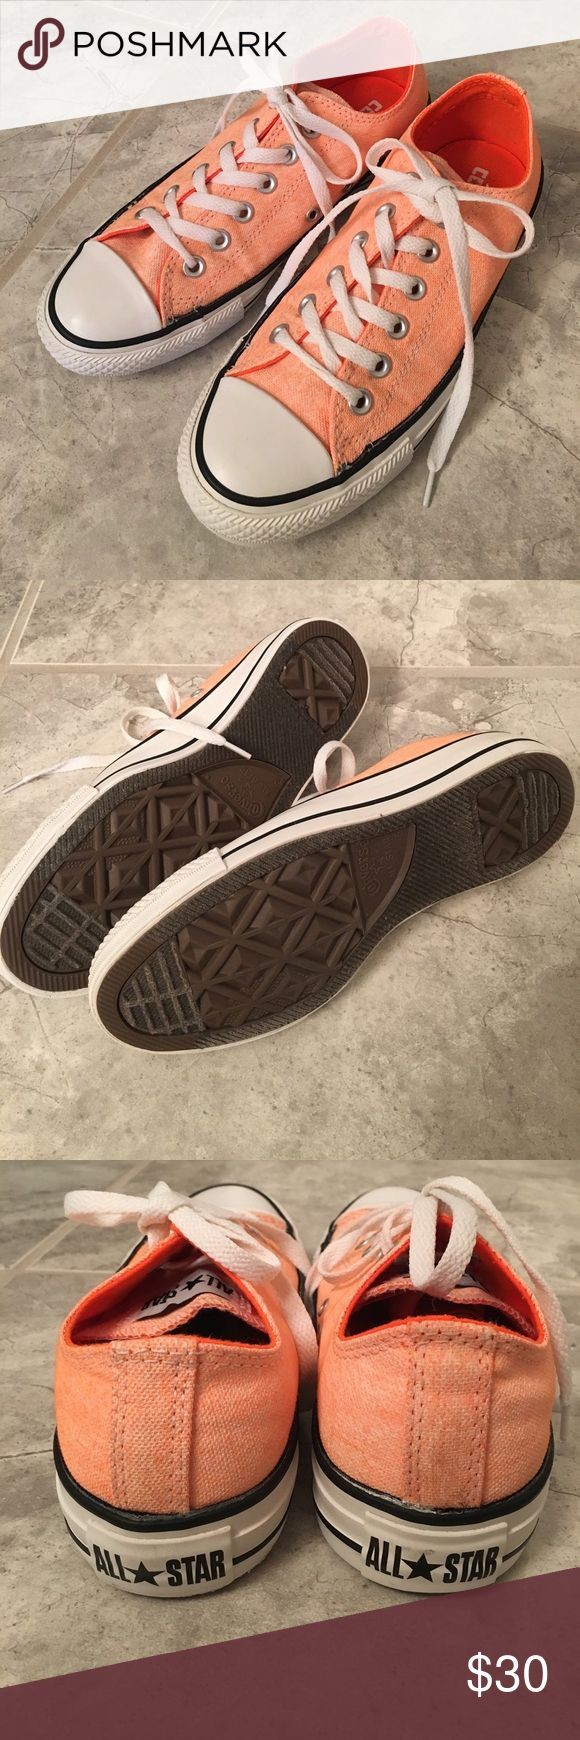 Neon orange Converse All Stars Worn only once - in pristine condition as you can see in the pics! Size 7 neon orange awesome classic Converse All Star sneakers. Snag them quick! Converse Shoes Sneakers